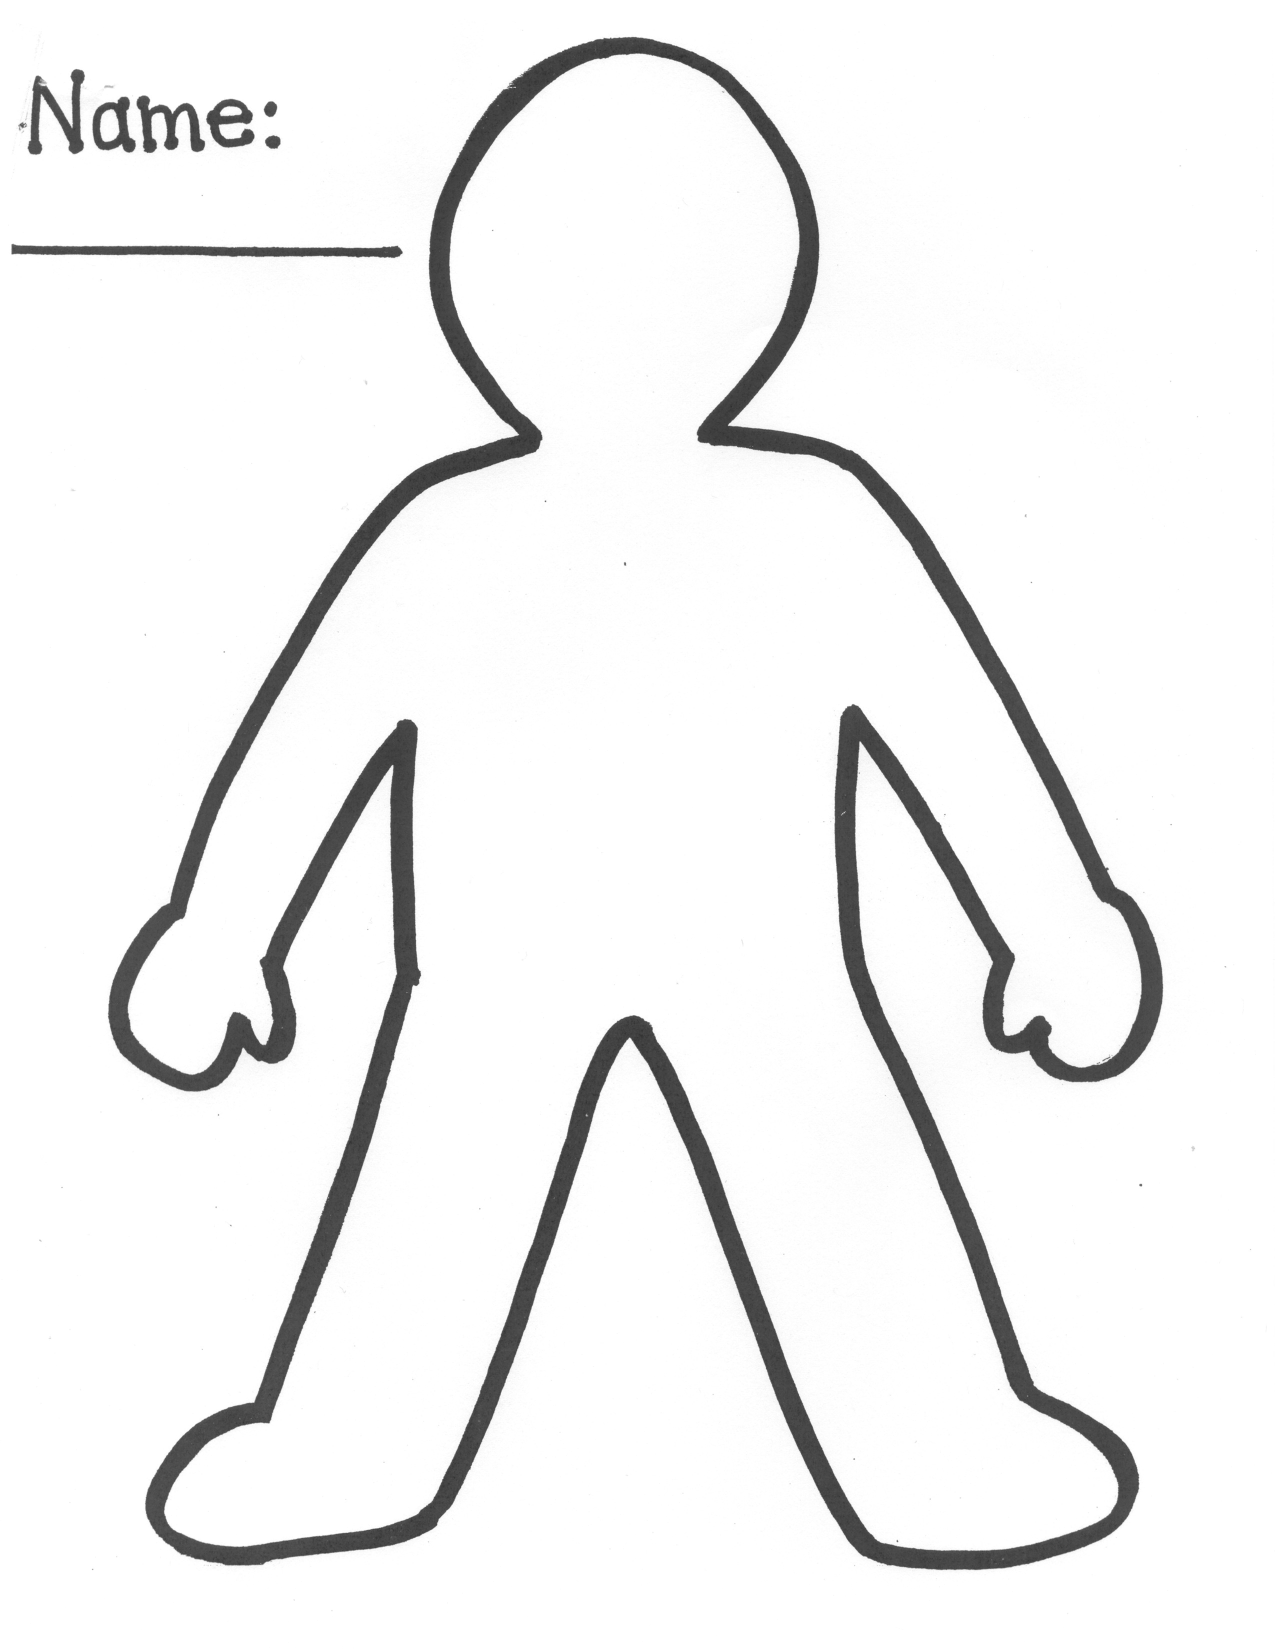 Clip Art Person Outline Coloring Page person outline coloring page az pages template of a people body cut out page